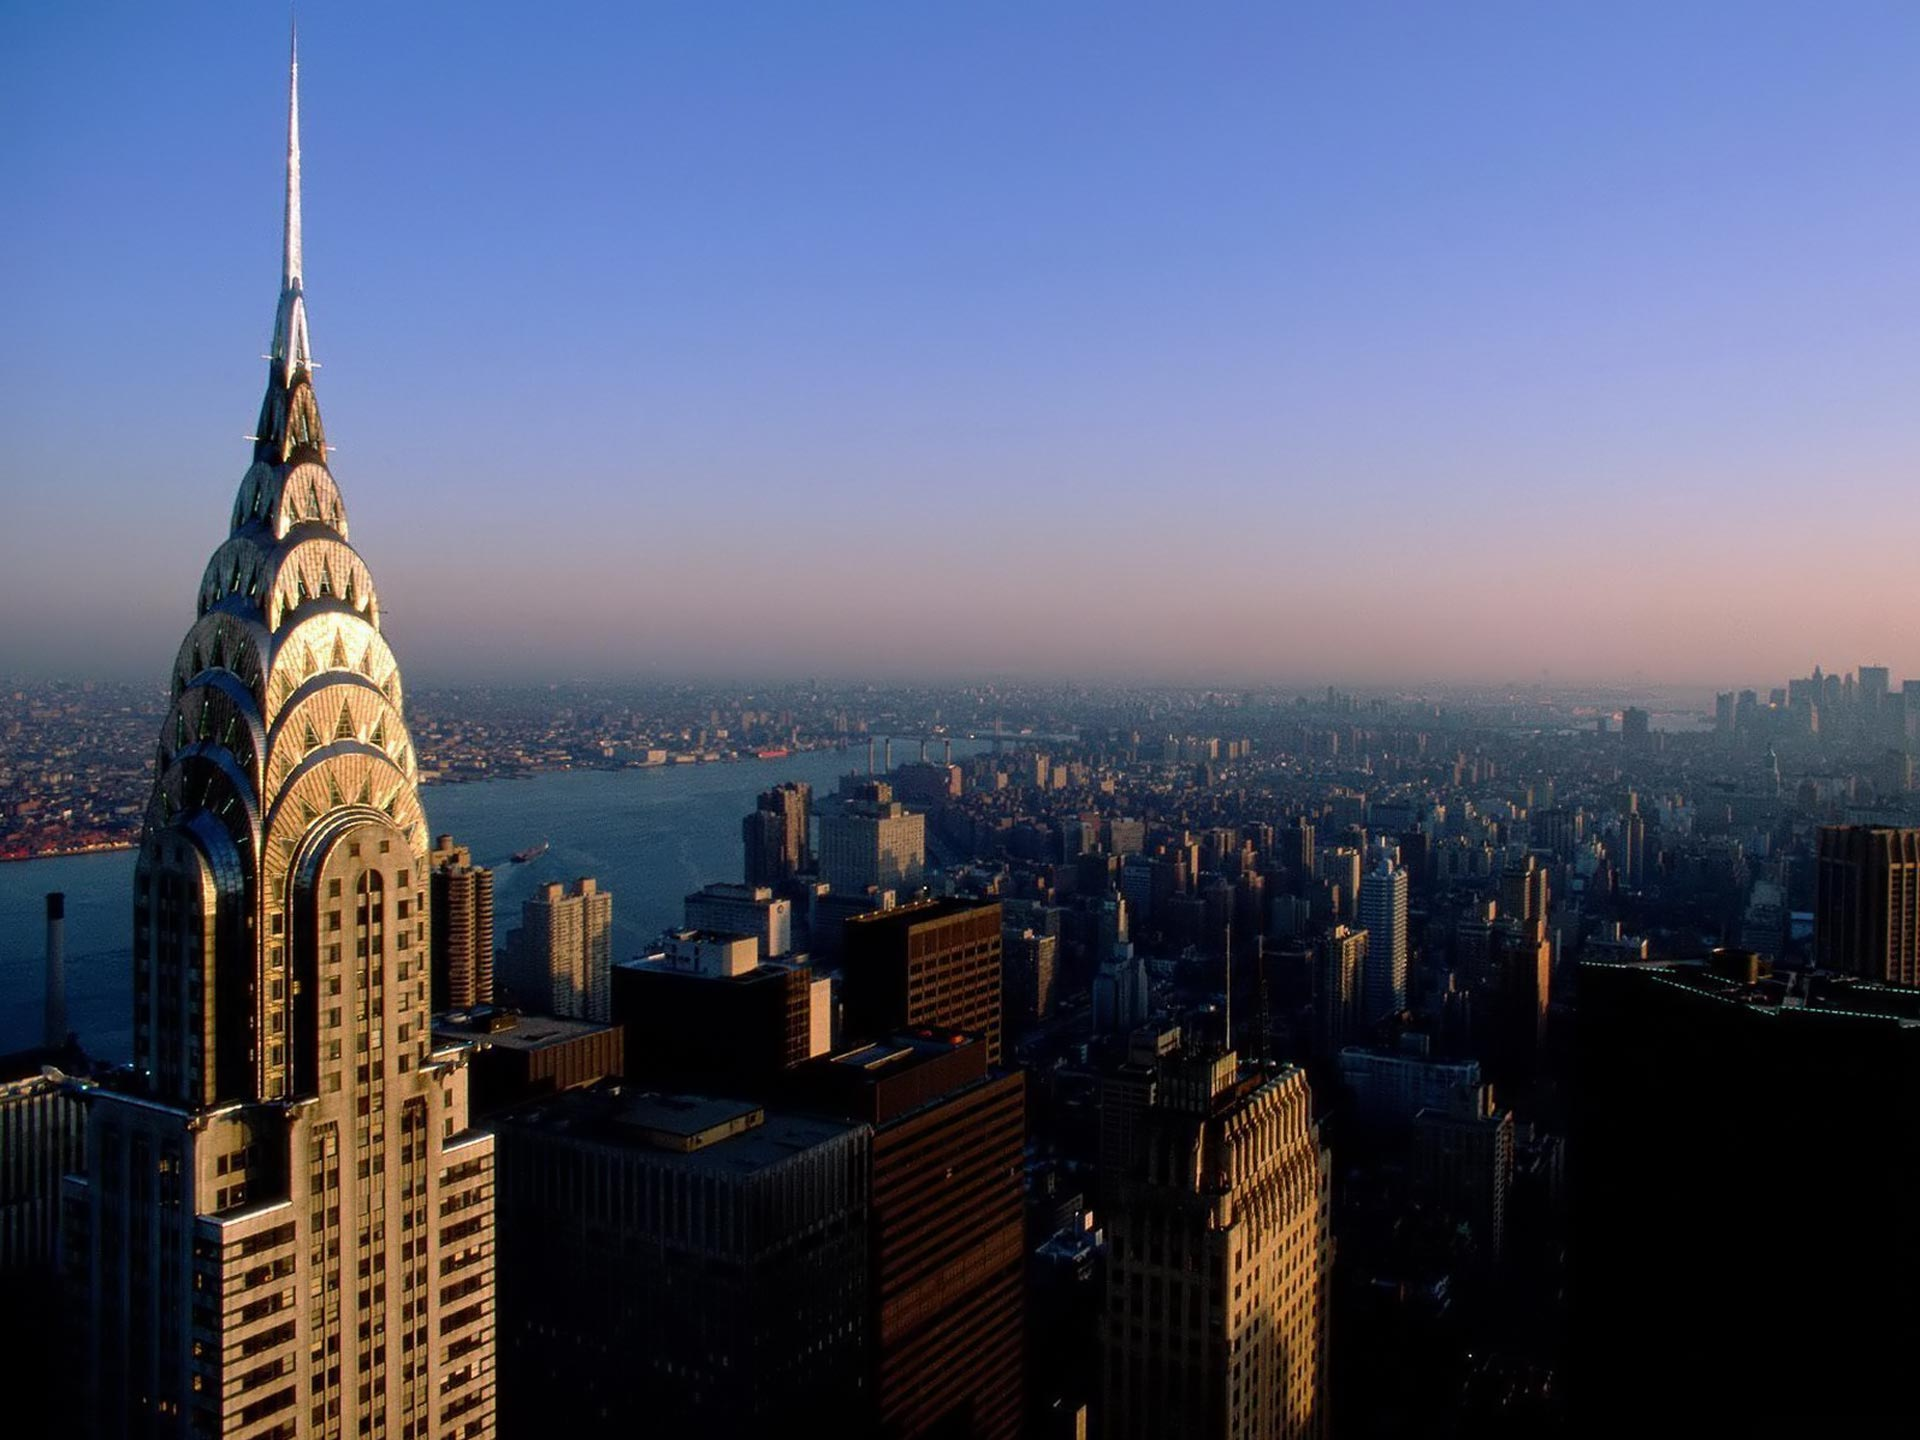 New York City backgrounds hd Wallpaper and make this wallpaper for 1920x1440